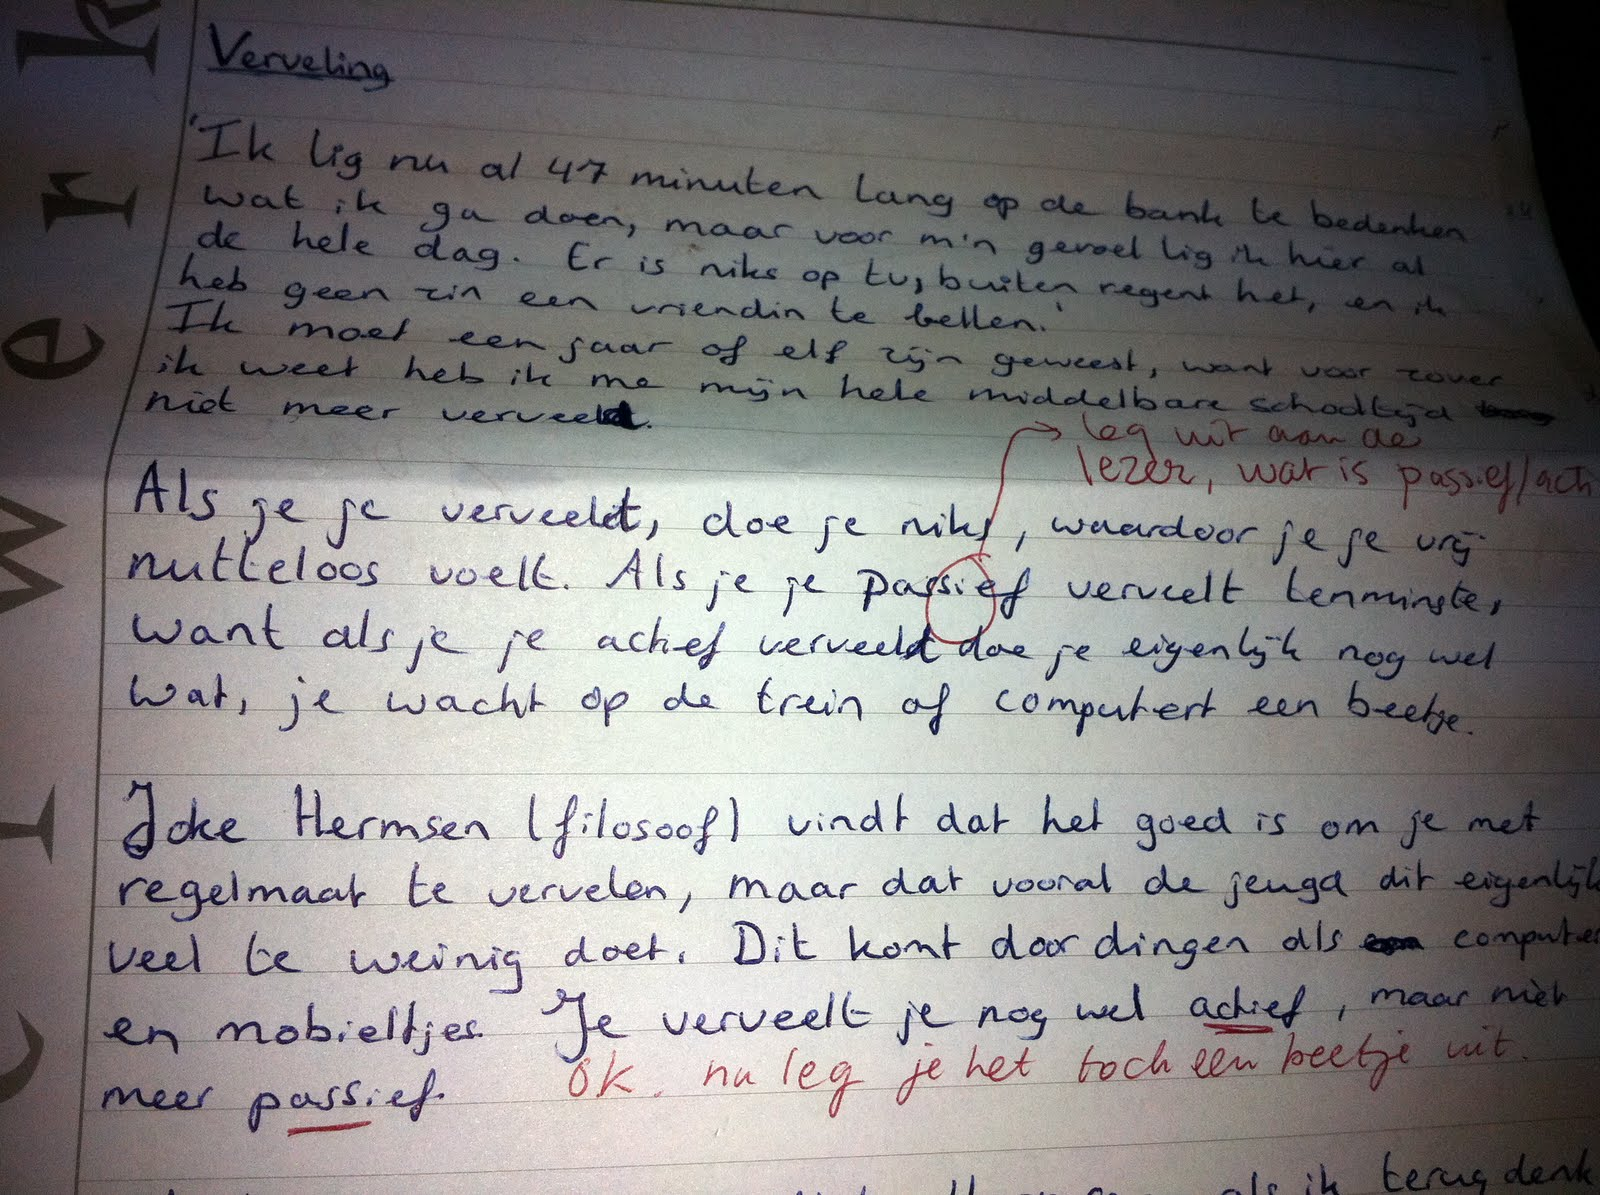 essay voorbeelden Descriptive essay samples one of the most popular forms of essays, it is important to grasp how to write one look at our samples of descriptive essays to understand how to write them on your own my room  the door is white, with some scratches at the bottom from my pug scraping it with her claws my pug scratches the door when she.